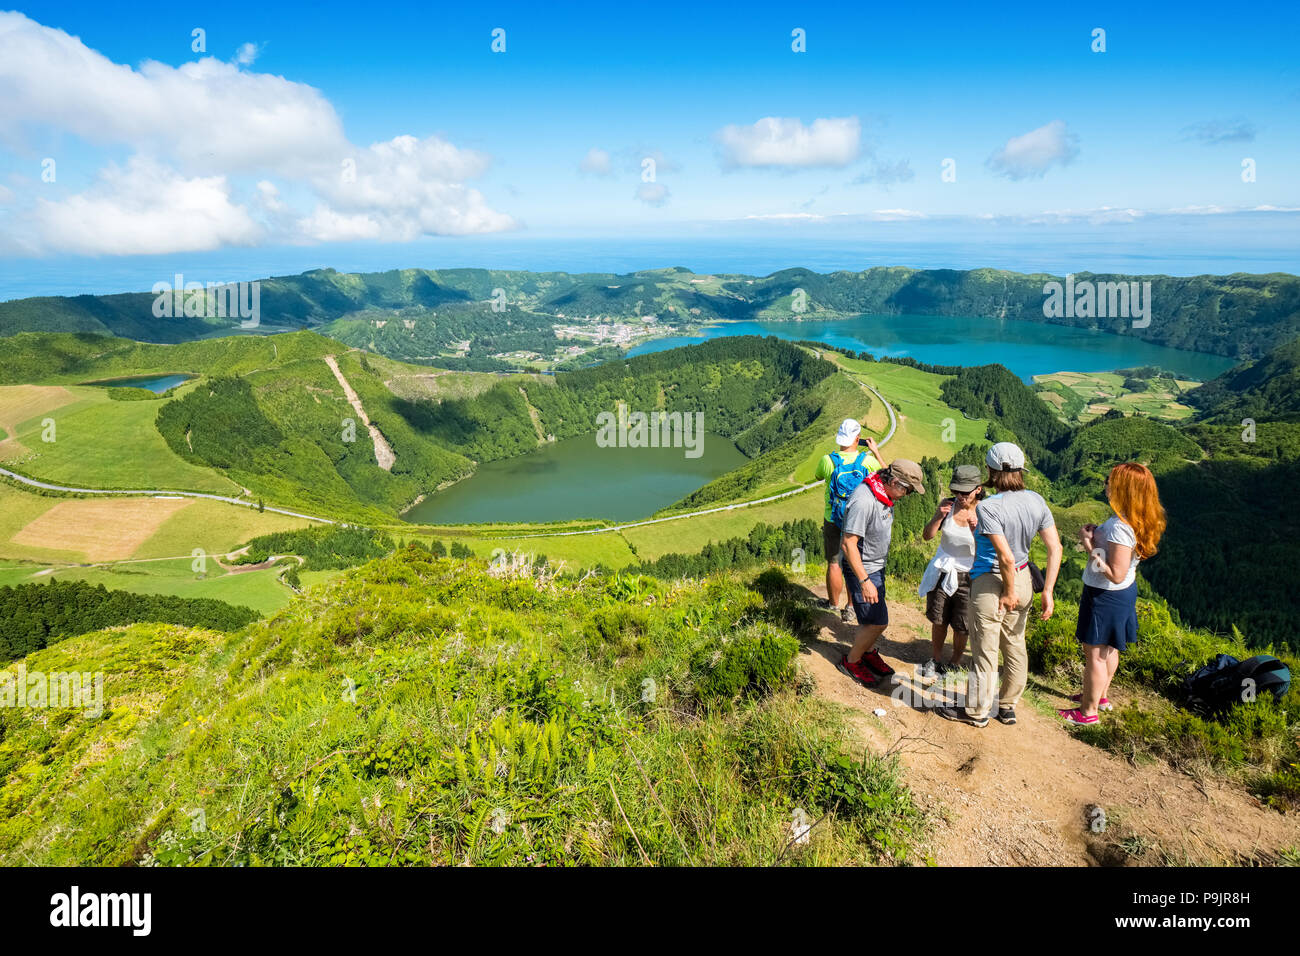 Tourists at a viewpoint over Sete Cidades, two lakes and a village in the dormant crater of a volcano on the island of Sao Miguel, The Azores - Stock Image